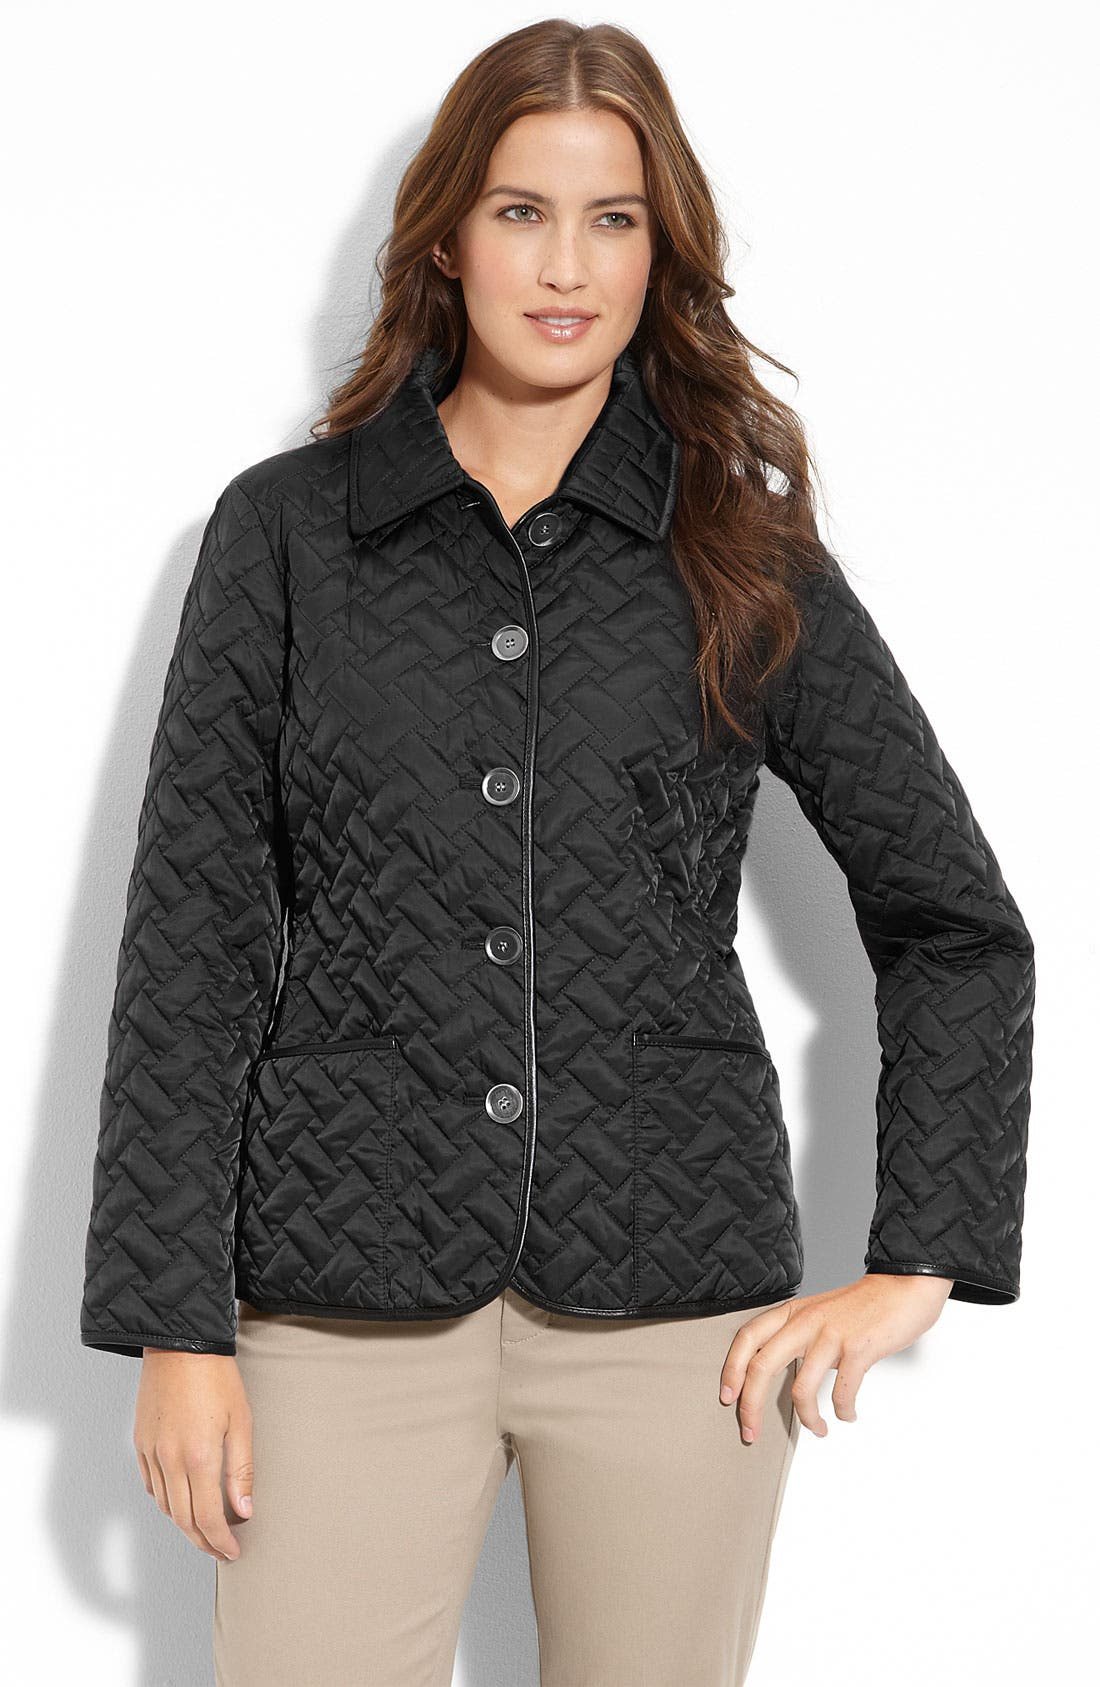 Alternate Image 1 Selected - Cole Haan Leather Trim Quilted Jacket (Petite)